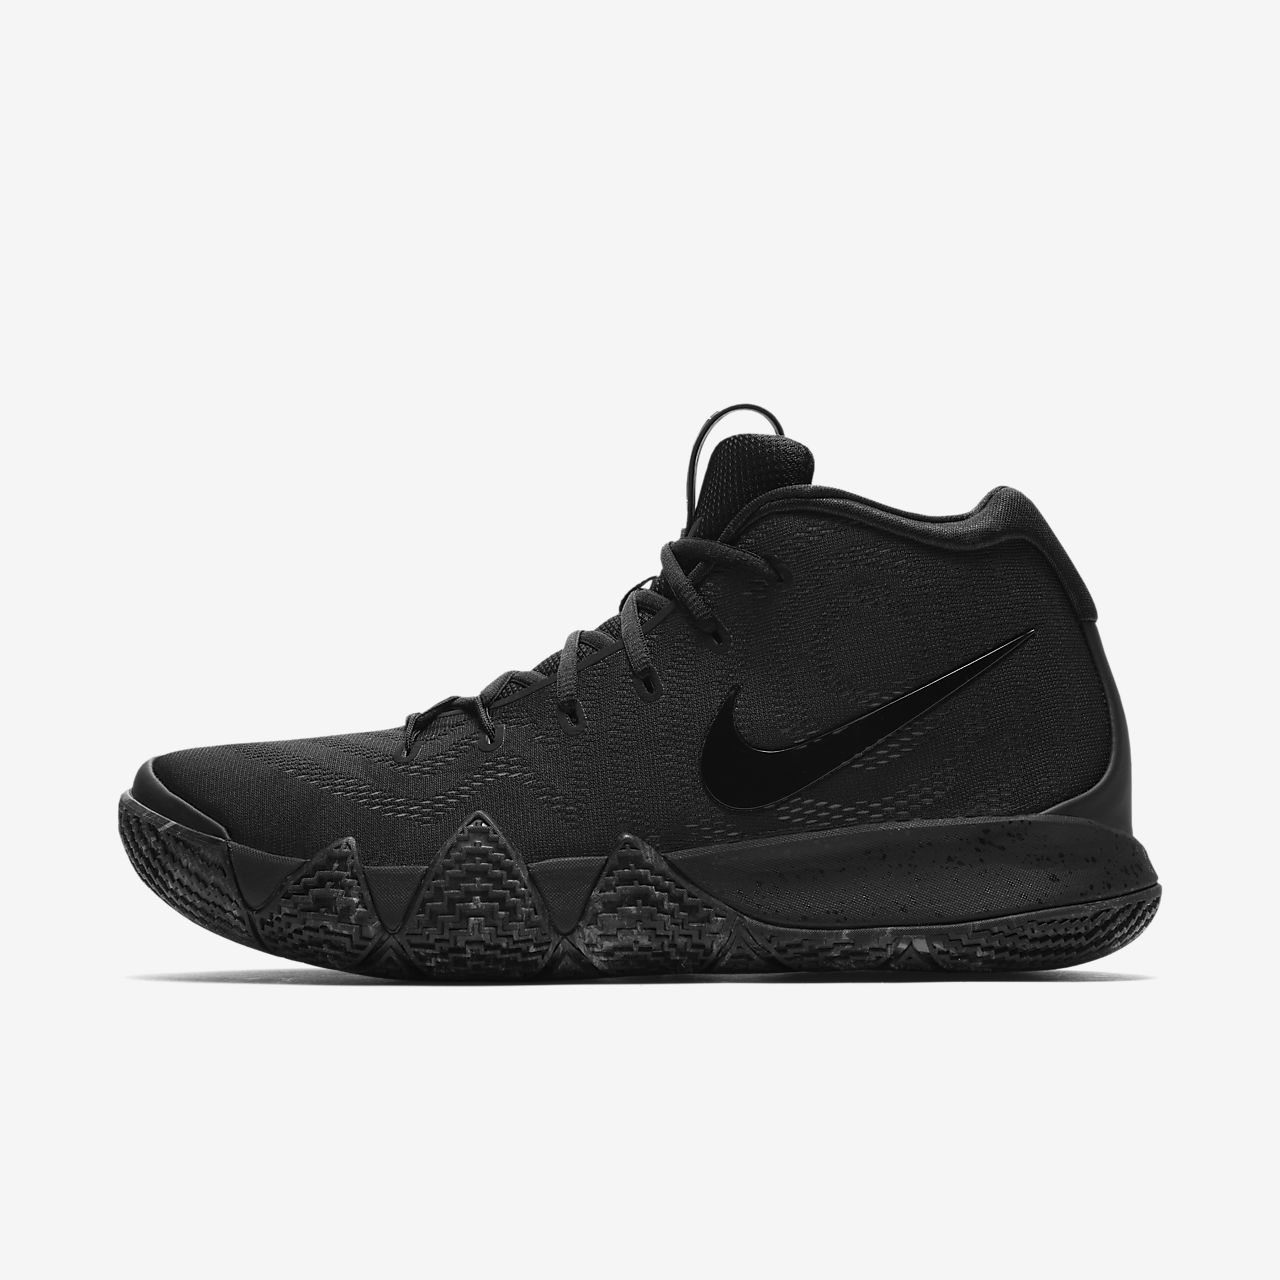 watch 15397 6b929 Kyrie 4 Basketball Shoe. Nike.com CA